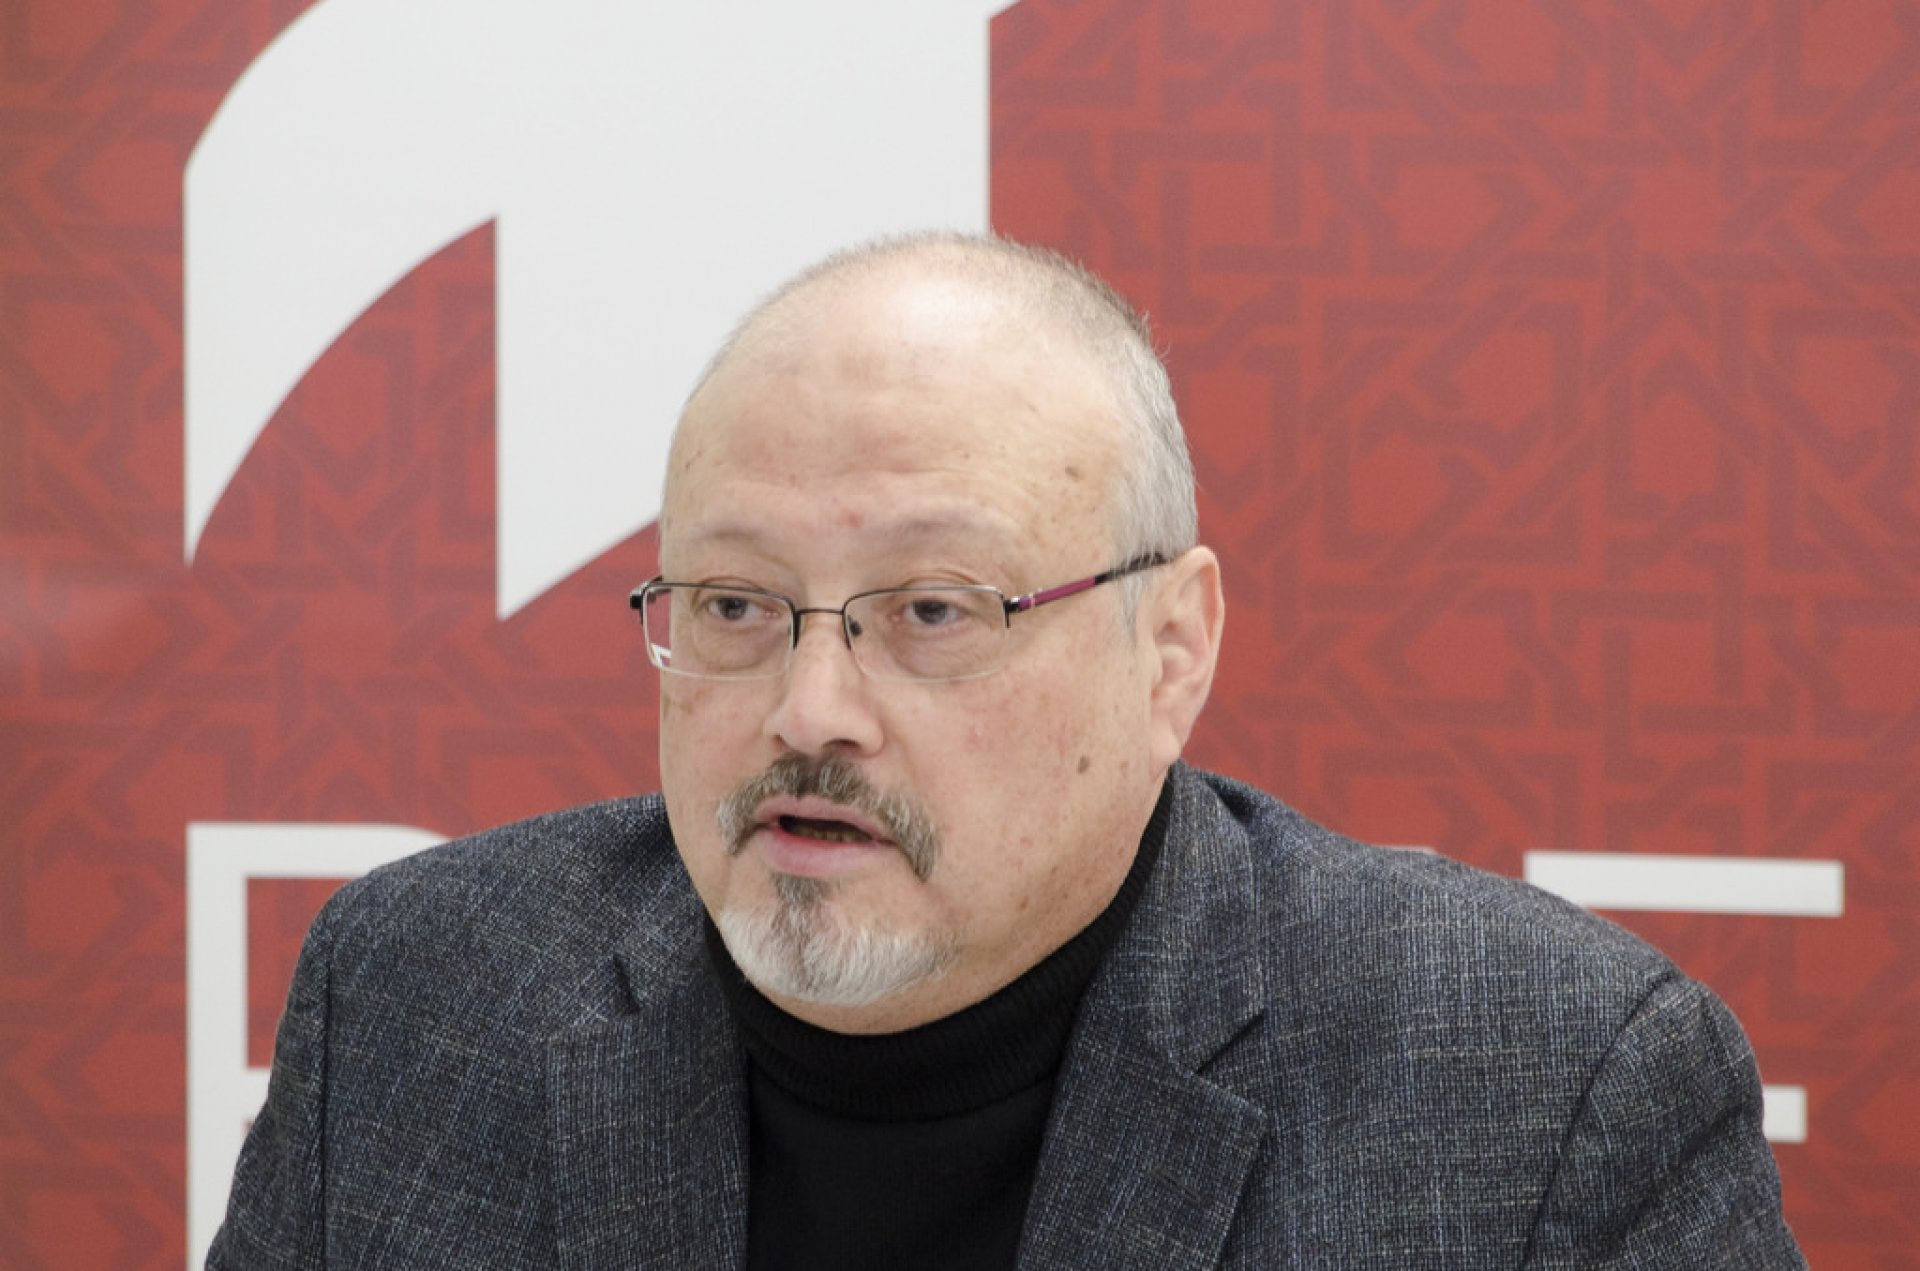 Saudi journalist, Global Opinions columnist for the Washington Post, and former editor-in-chief of Al-Arab News Channel Jamal Khashoggi offers remarks during POMED's